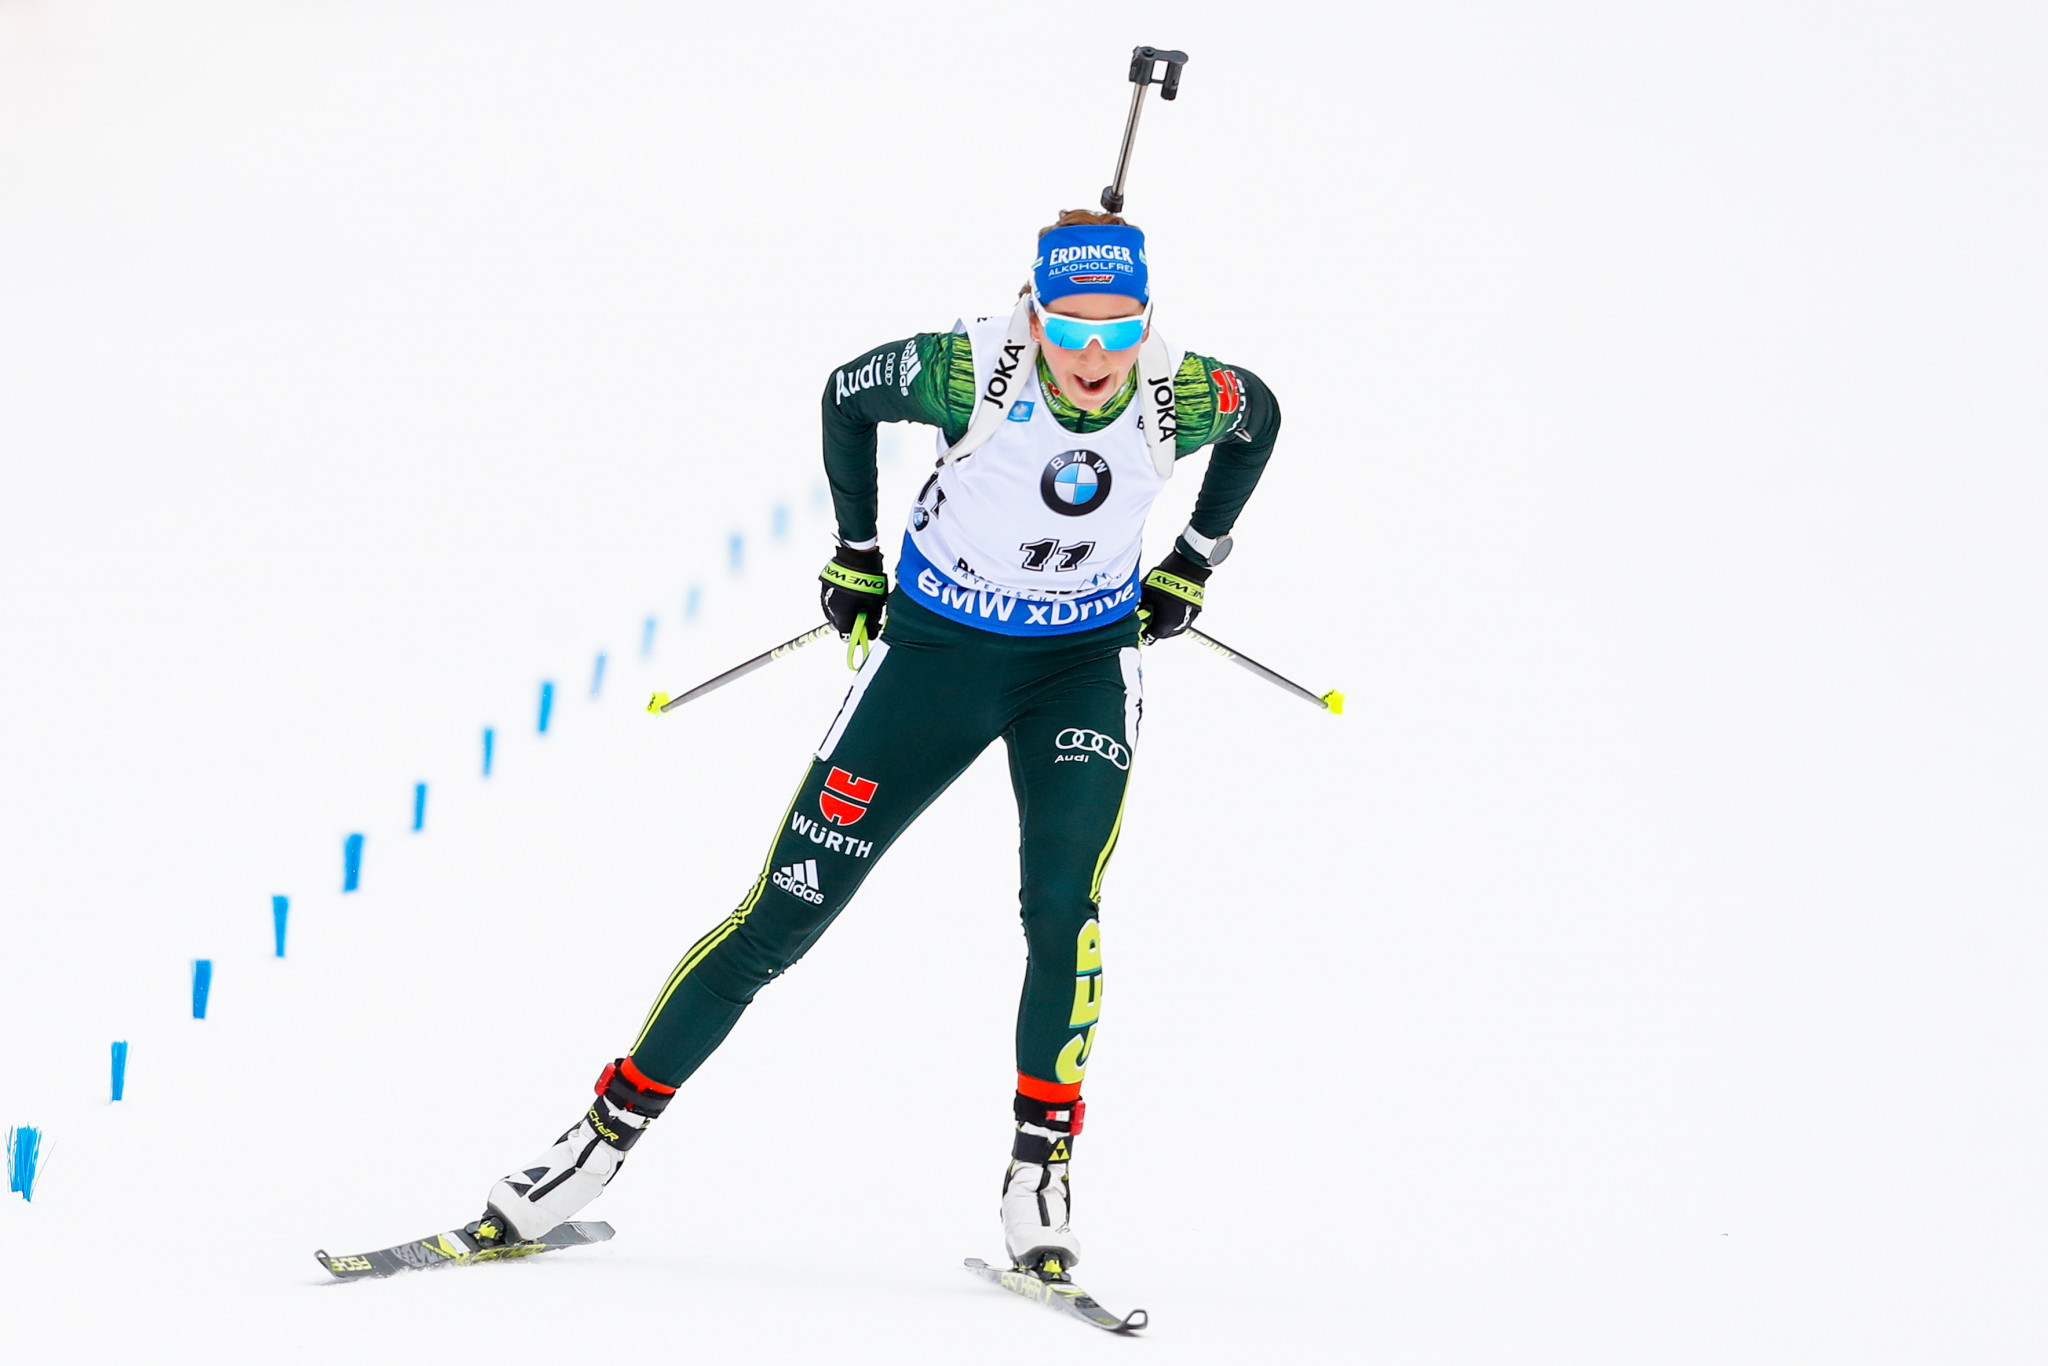 Germany's Franziska Preuß sealed the first World Cup victory of her career as she won the women's 12.5km mass start race ©Getty Images